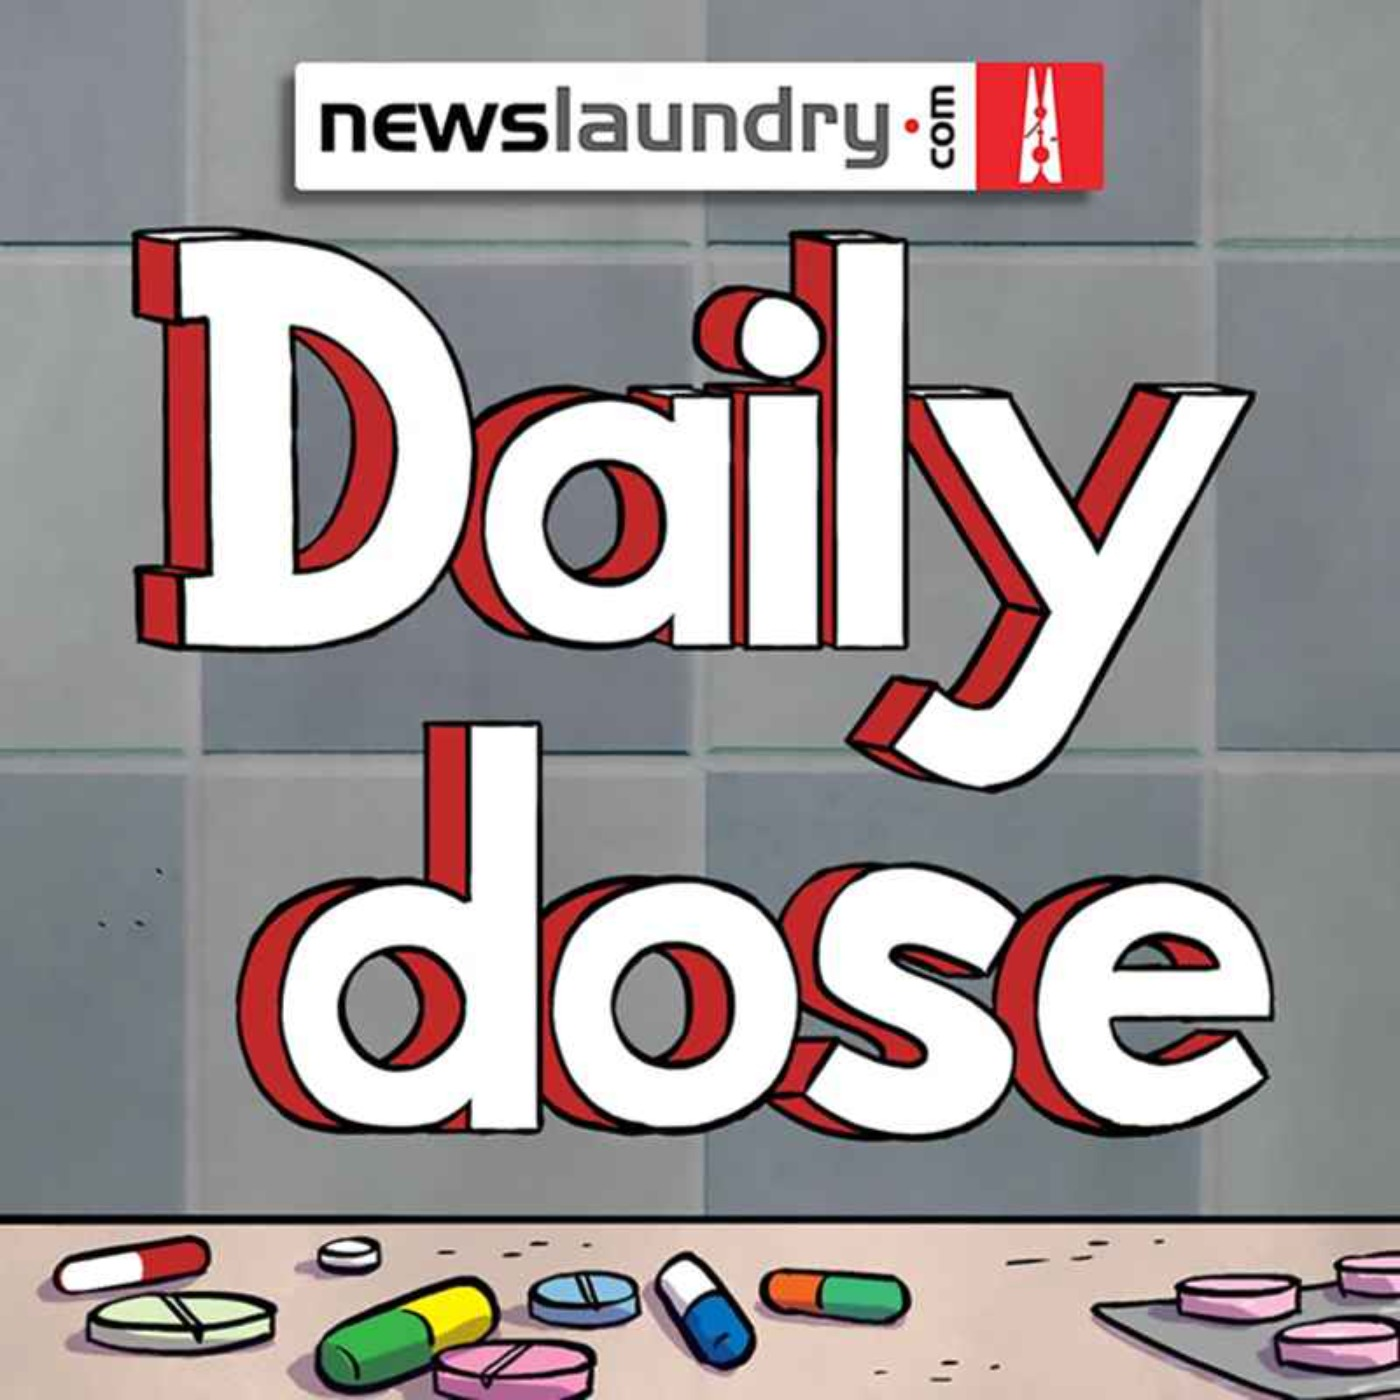 Daily Dose Ep 518: SC's Delhi pollution panel, Bihar seat-sharing, World Bank warning, and more